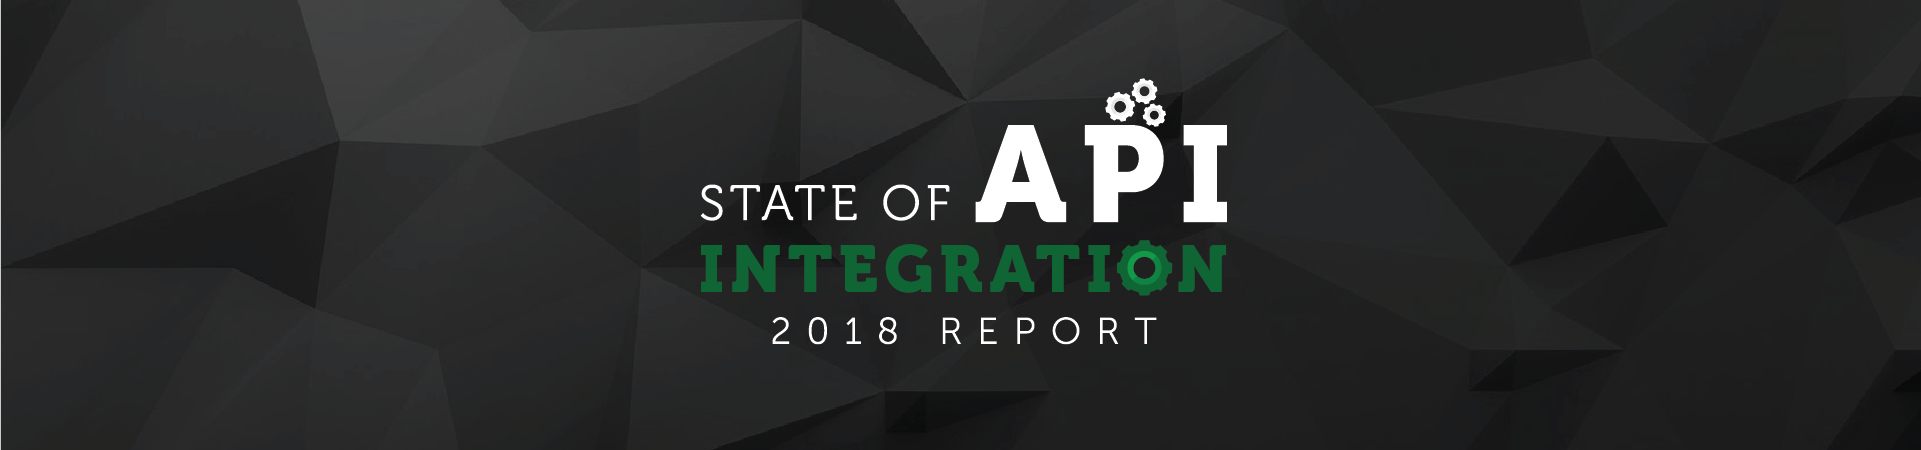 State of API Integration Report presented by Cloud Elements